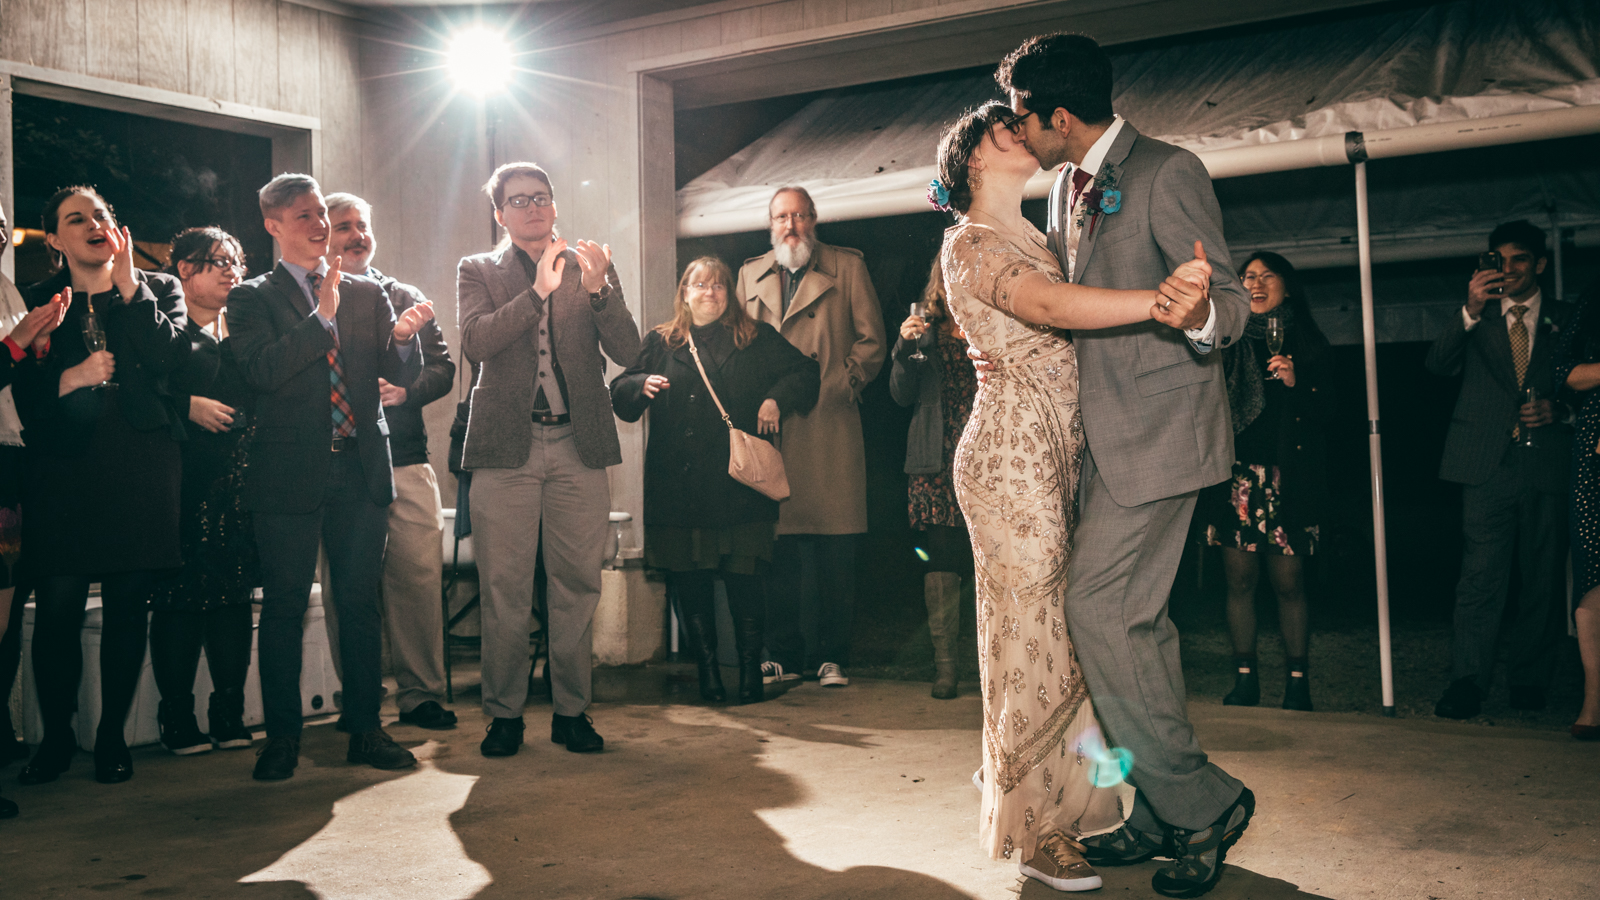 Bride and Groom share a kiss during their first dance at an outdoor wedding reception